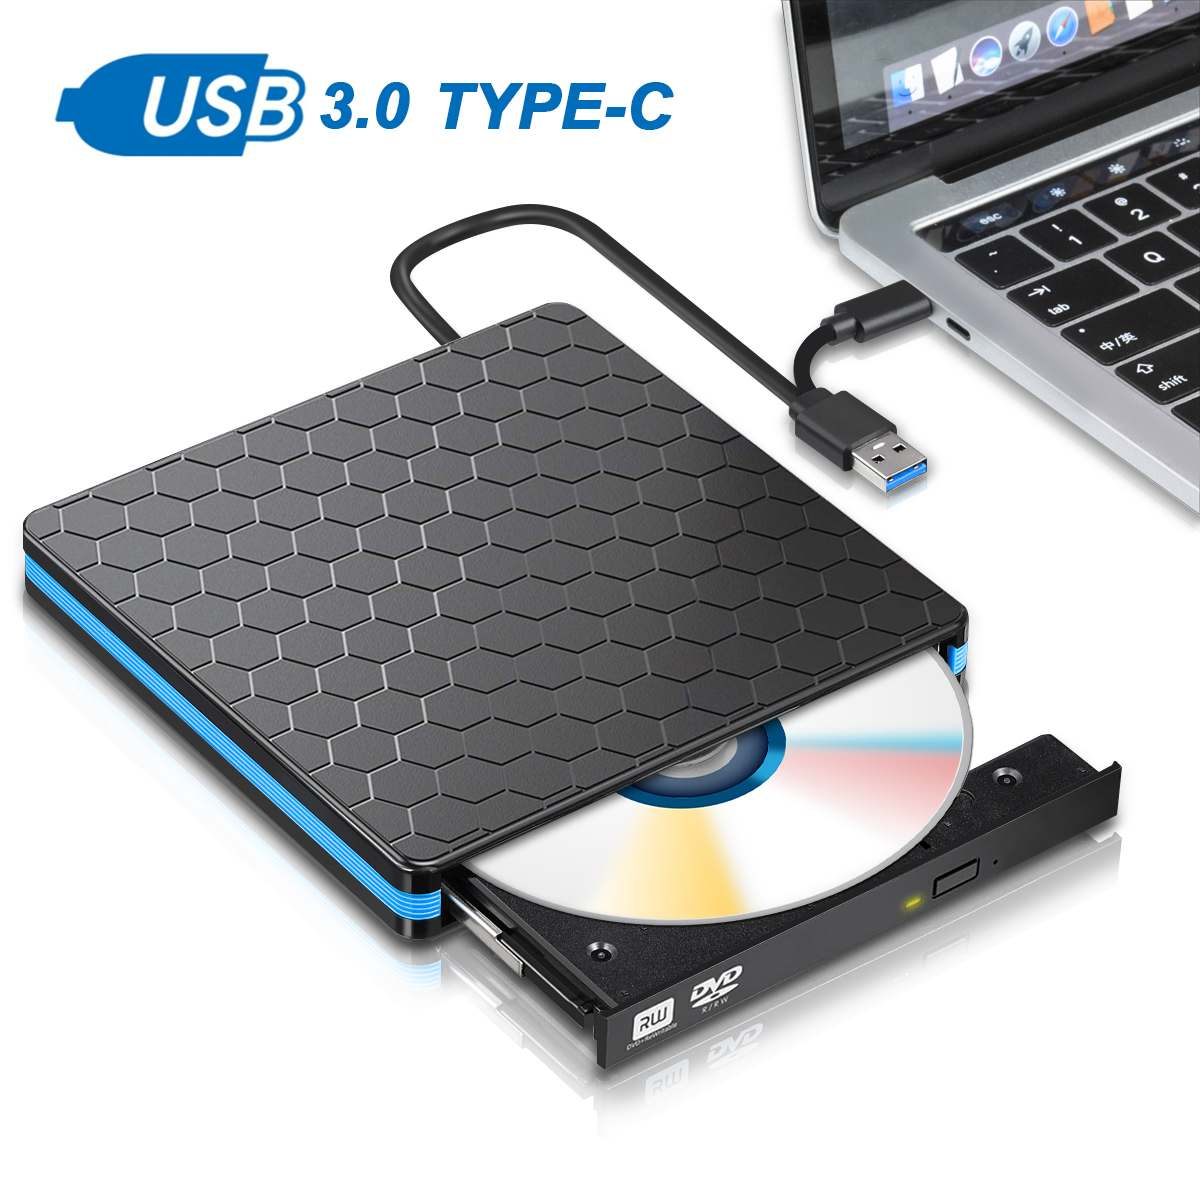 Universal Type C USB 3.0 External DVD/CD/ VCD Burner RW SVCD Drive Player Optical Drive For Mac/PC/Apple Laptop/OS/Windows